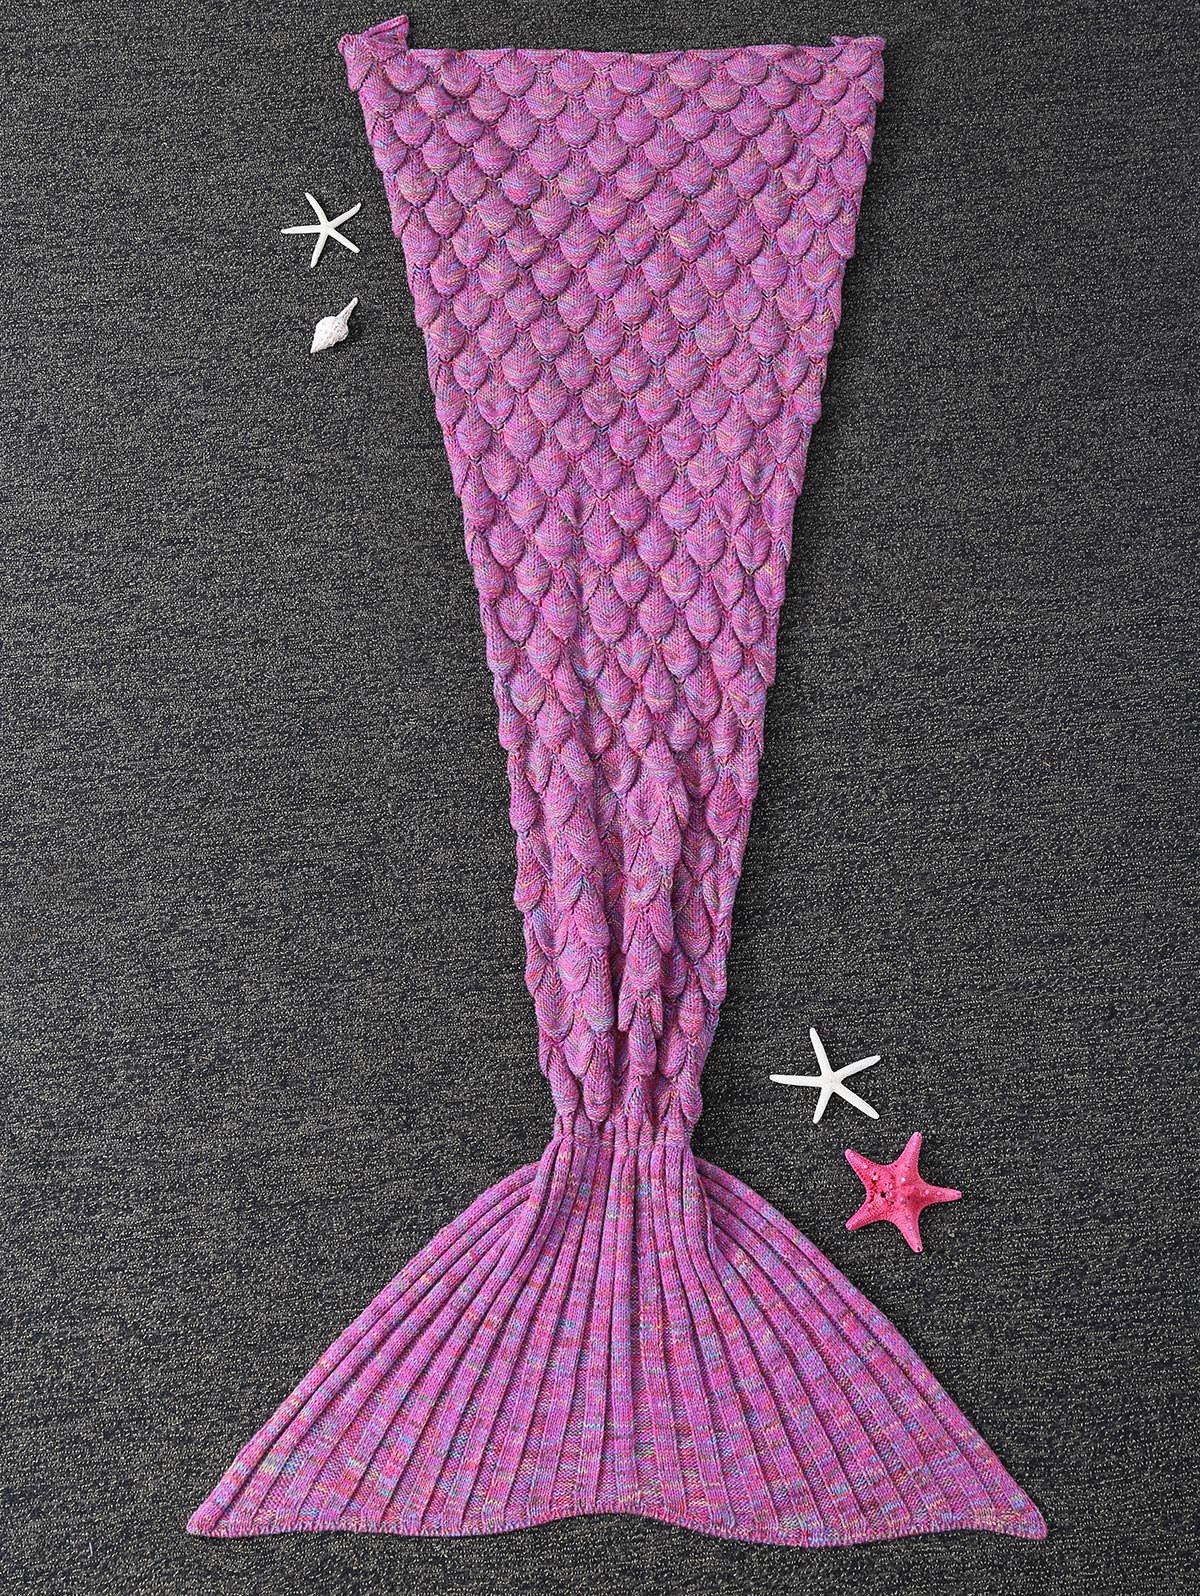 Trendy Soft Fish Scale Design Antipilling Sleeping Bag Wrap Mermaid Blanket